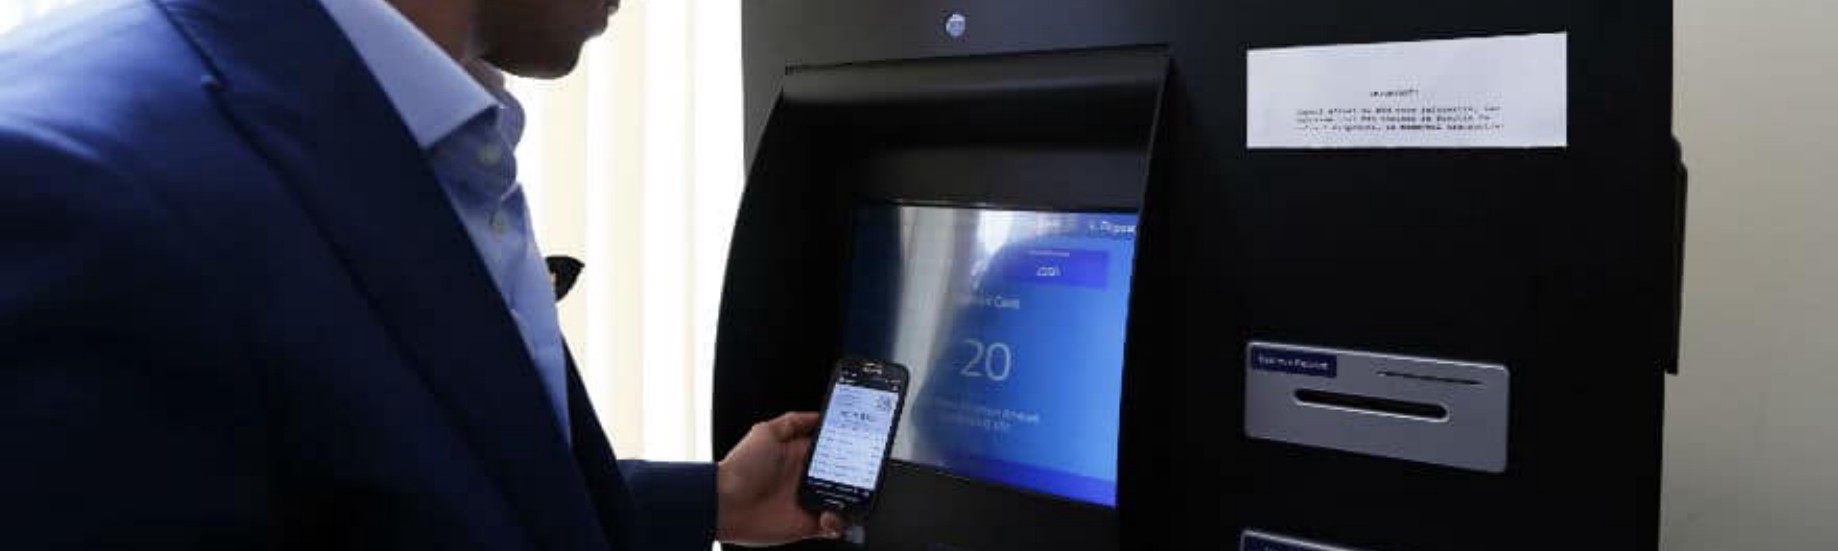 Turn Your Crypto to Cash at Any Bitcoin ATM with the Secure Wallet